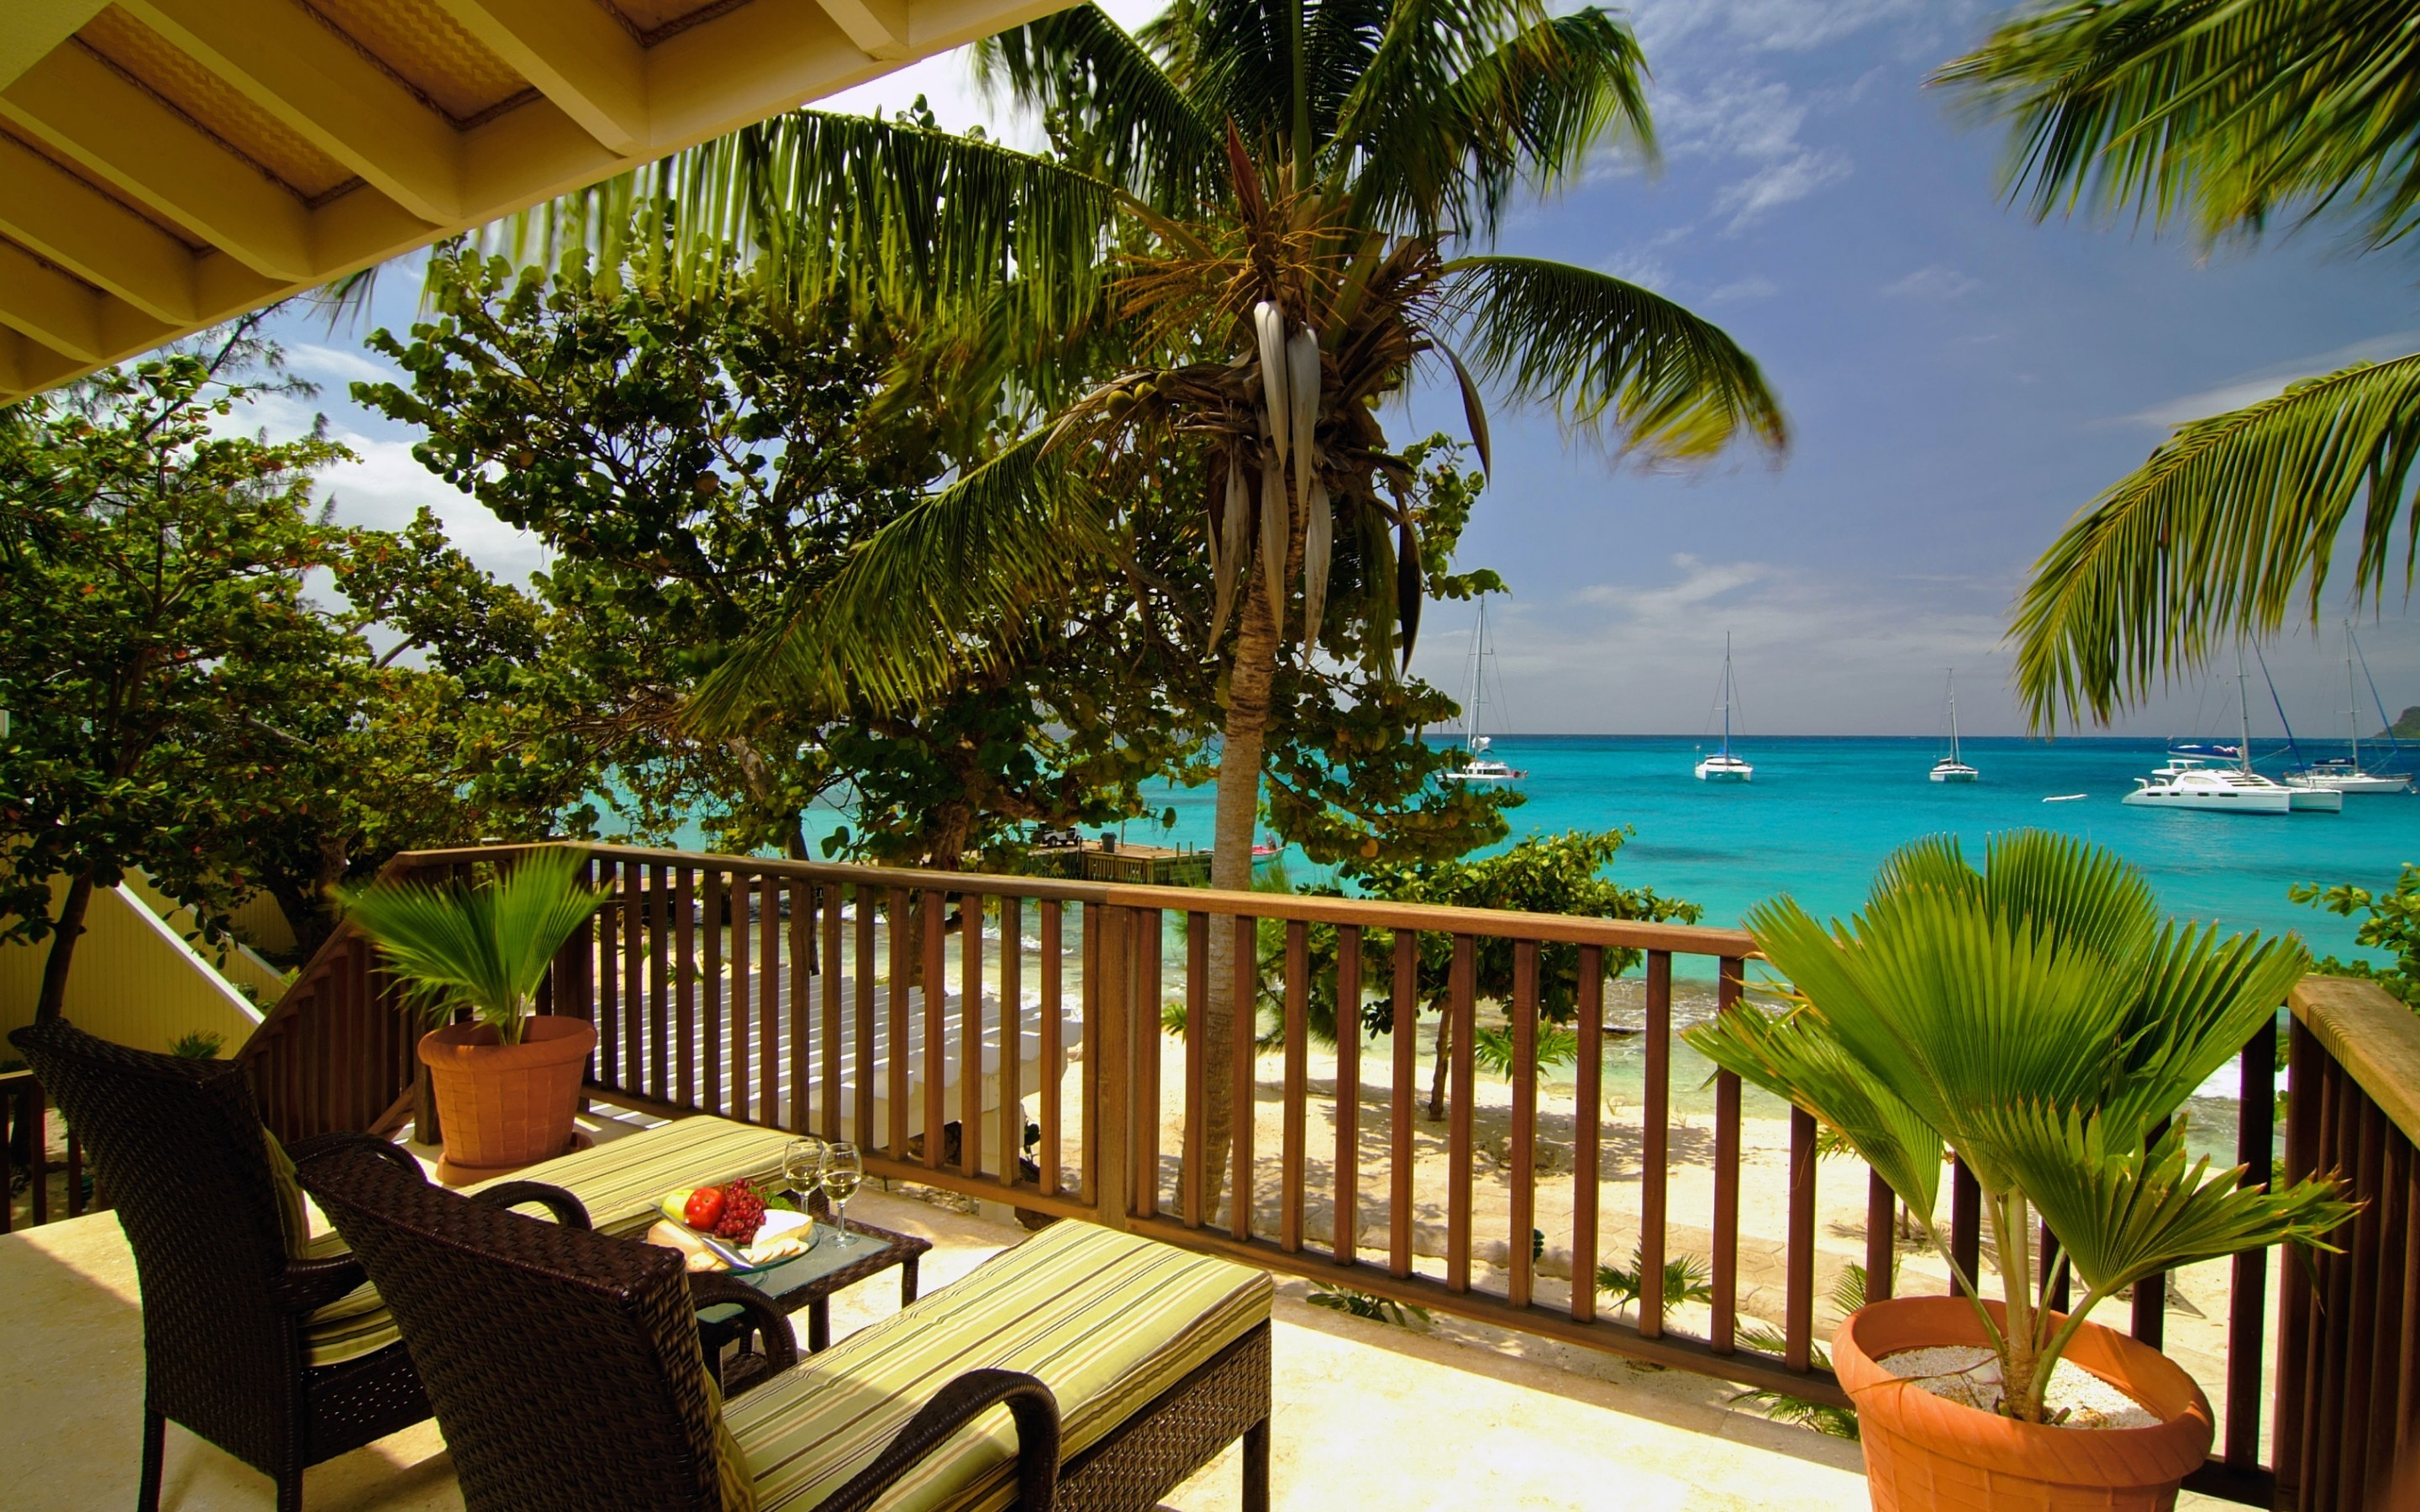 20906 download wallpaper Landscape, Sea, Beach, Palms screensavers and pictures for free